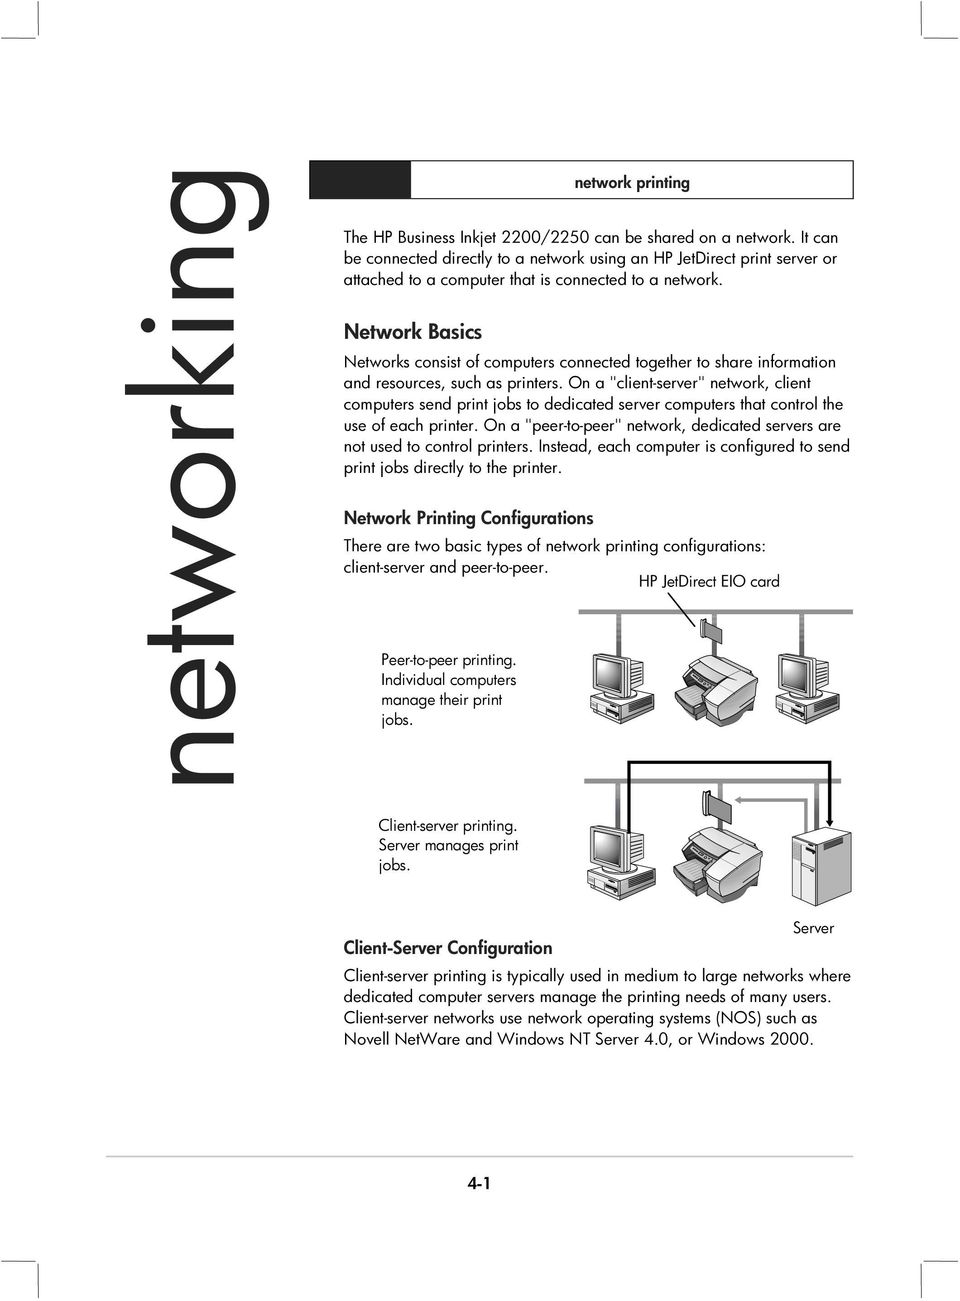 Network Basics Networks consist of computers connected together to share information and resources, such as printers.